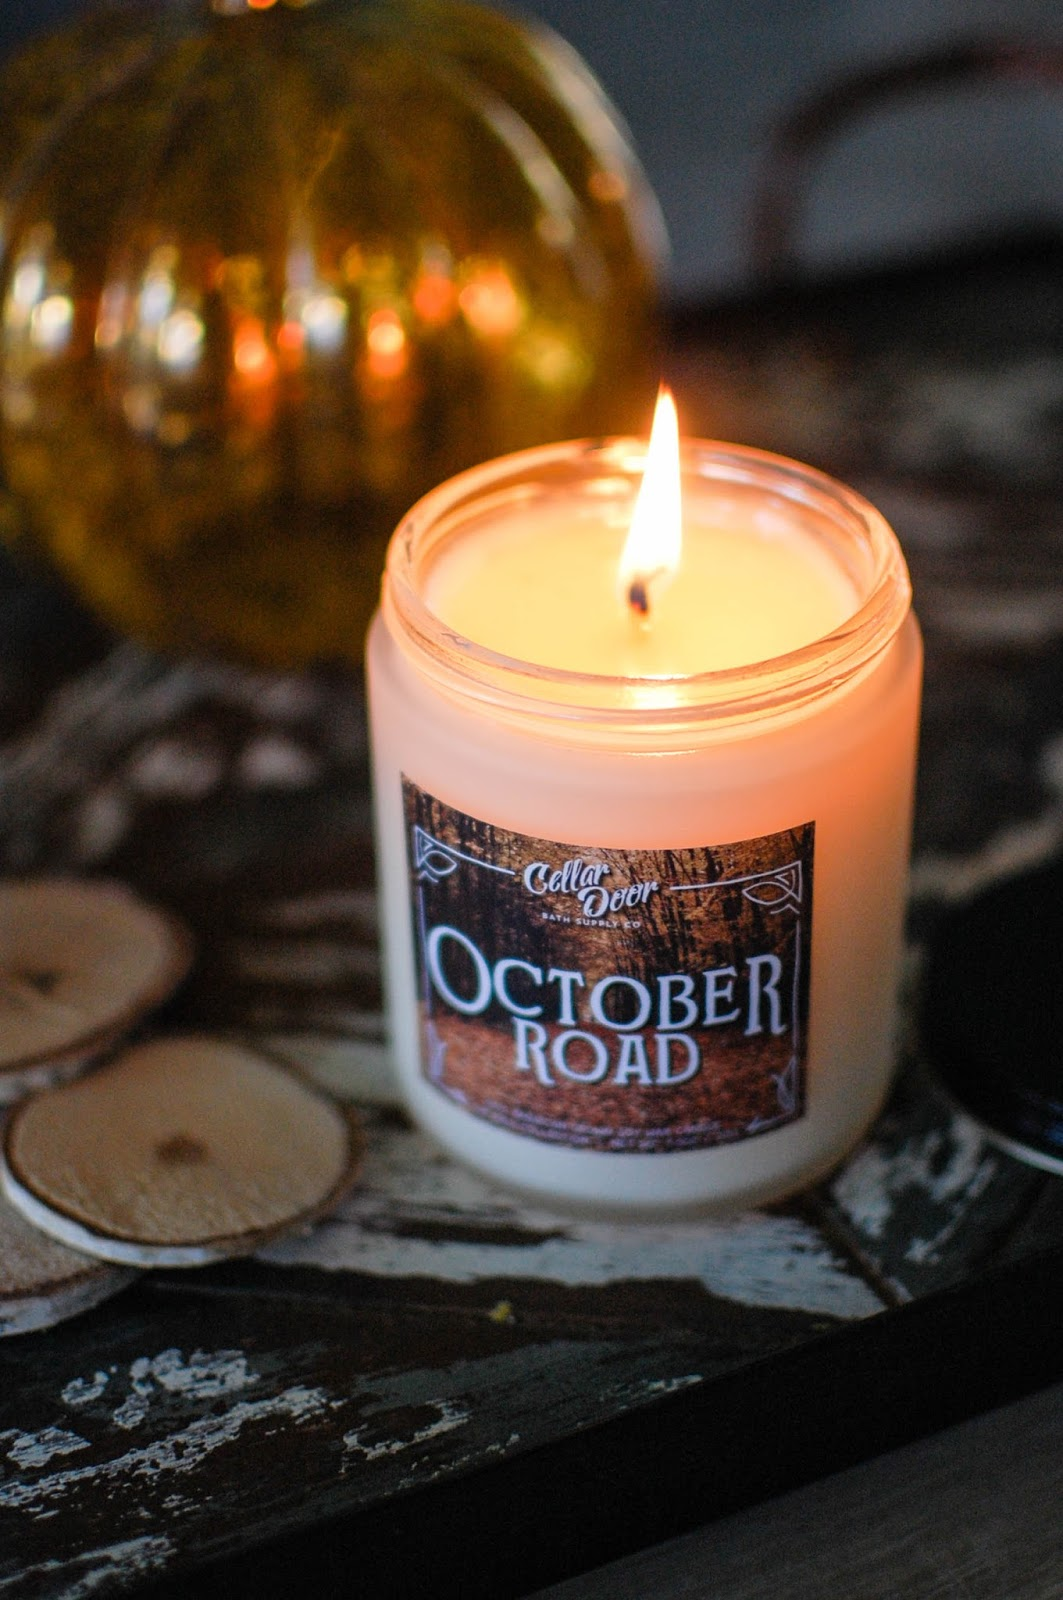 I purchased two candles in one go but I am going to review them separately. First up is October Road. & The Redolent Mermaid: Cellar Door Bath Supply Co.: October Road Candle